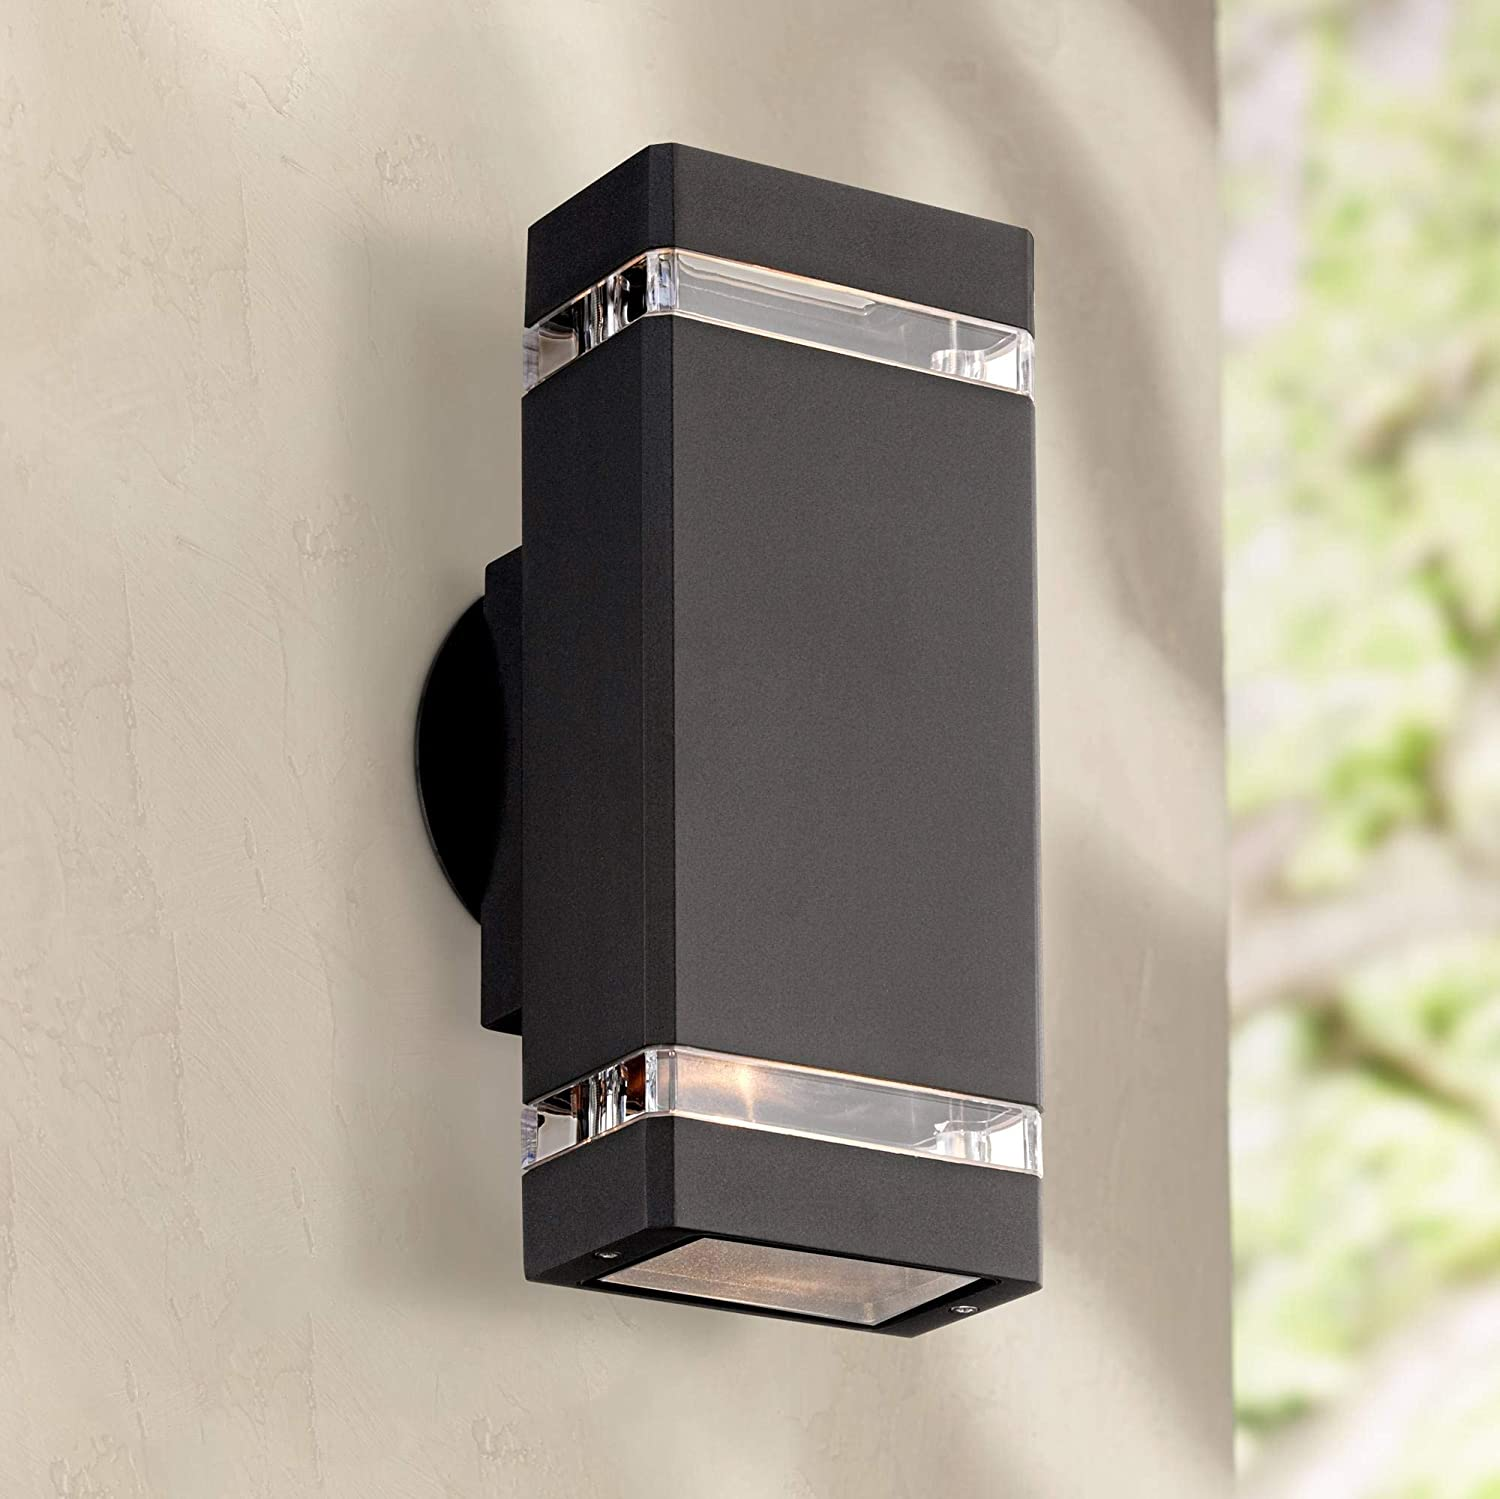 Skyridge modern outdoor wall light fixture black 10 1 2 rectangular glass up down for house porch patio possini euro design